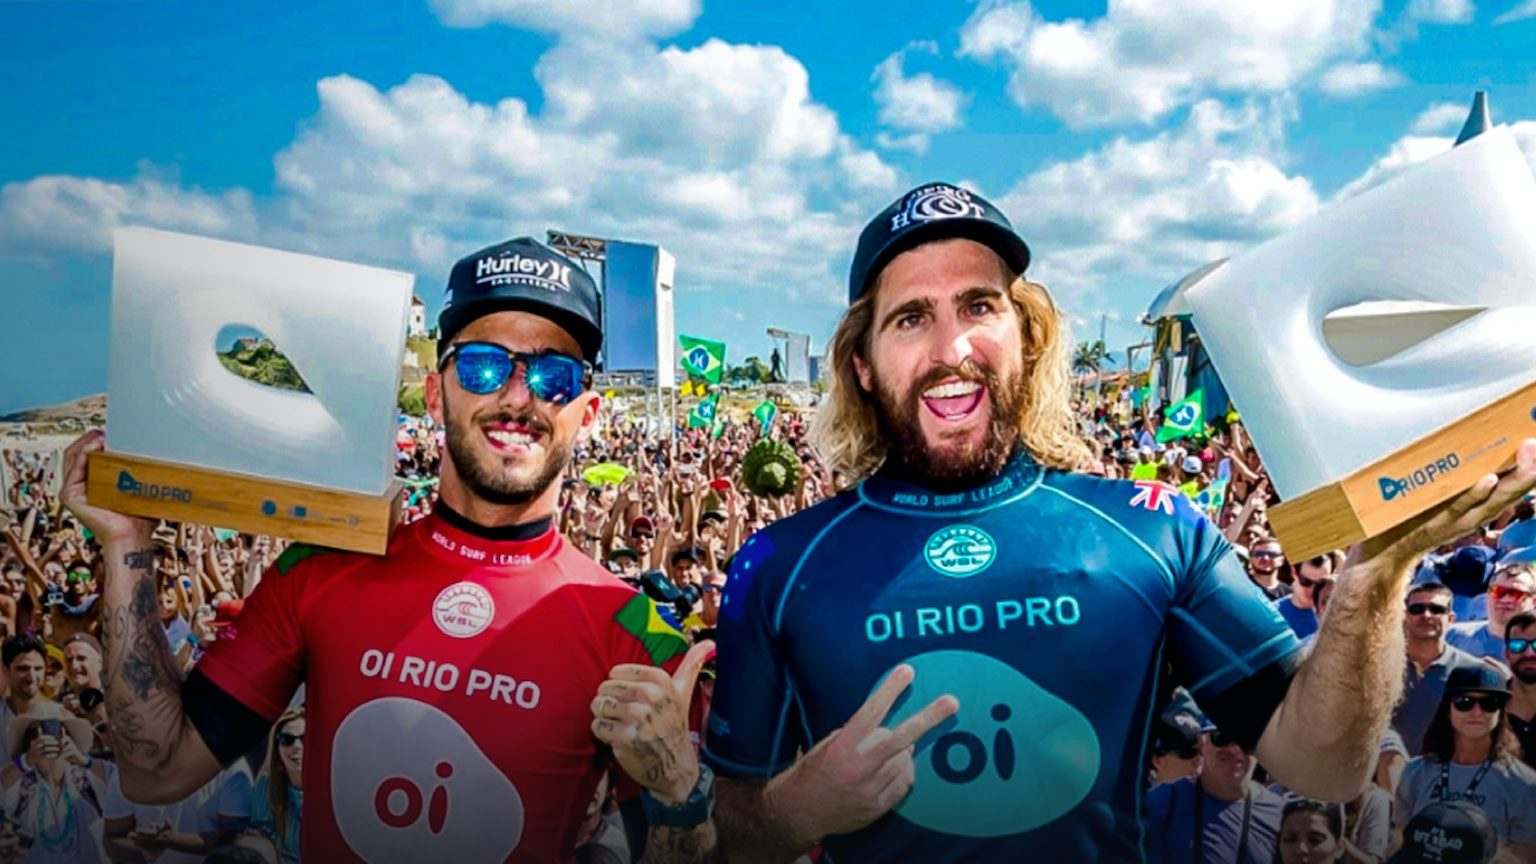 Two surfing champions in front of a crowd